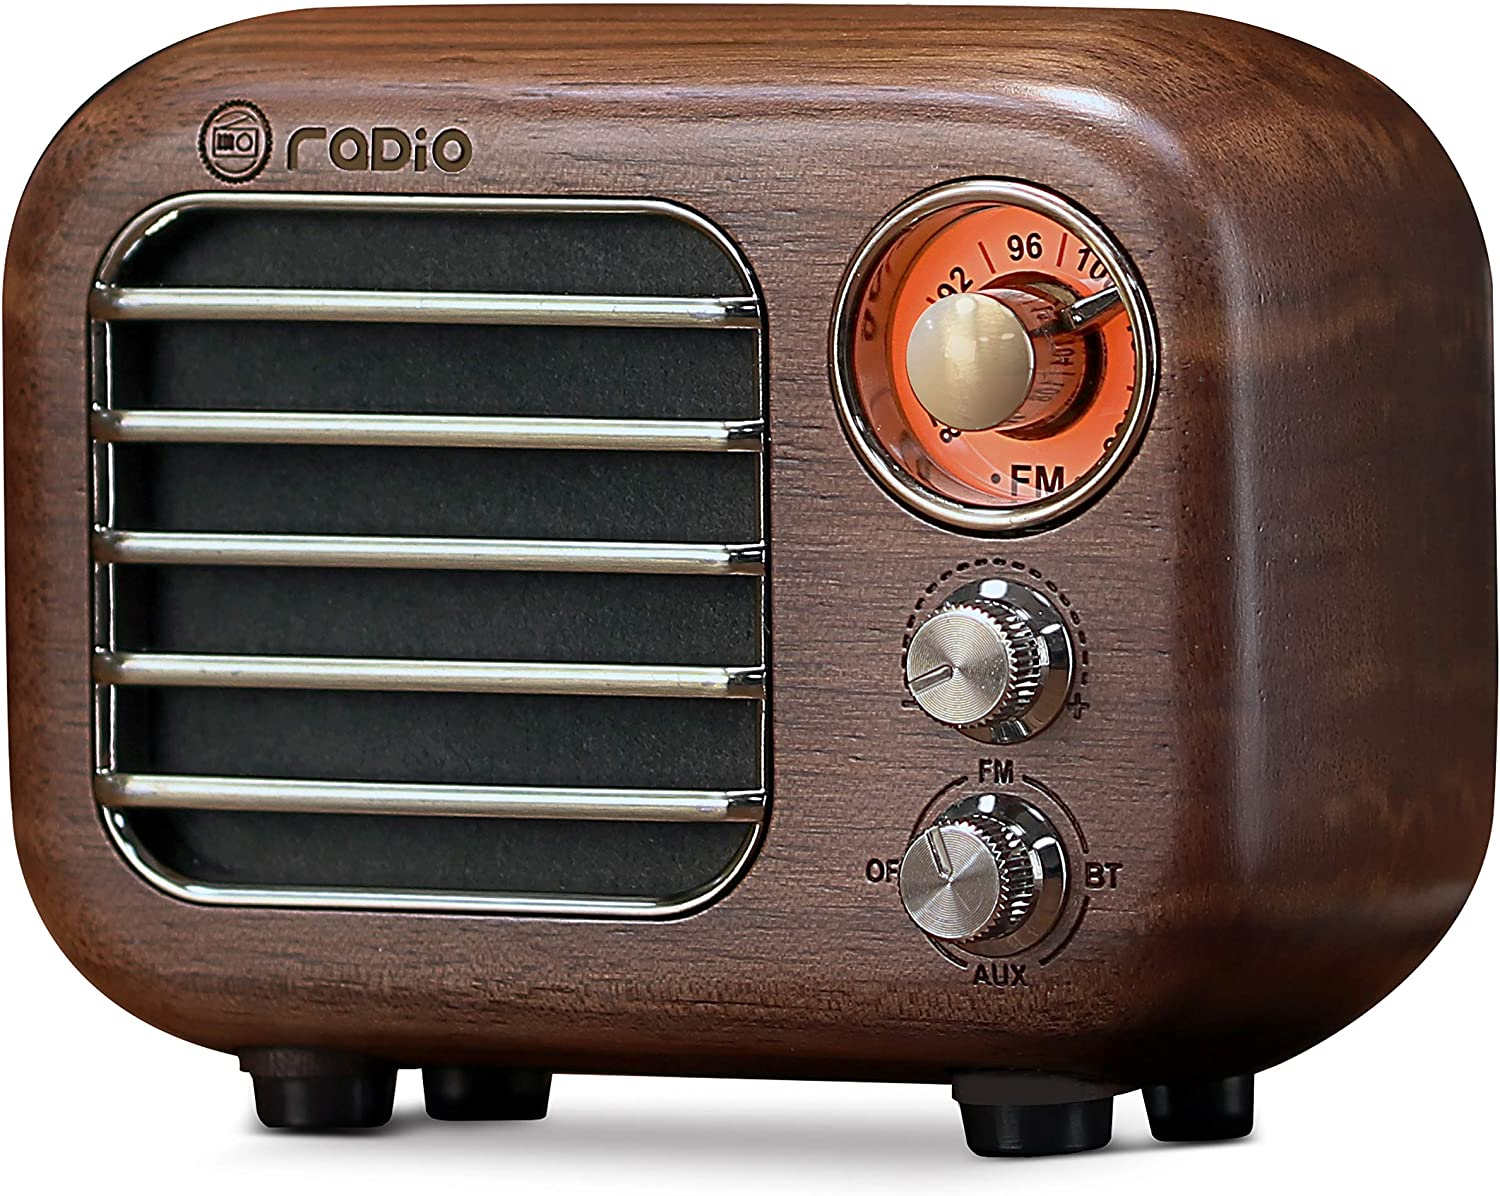 Retro FM Radio Bluetooth Speaker Portable Walnut Wood Radio Rechargeable Battery Operated, Old-Fashioned Design, Supported AUX Input, TF Cards